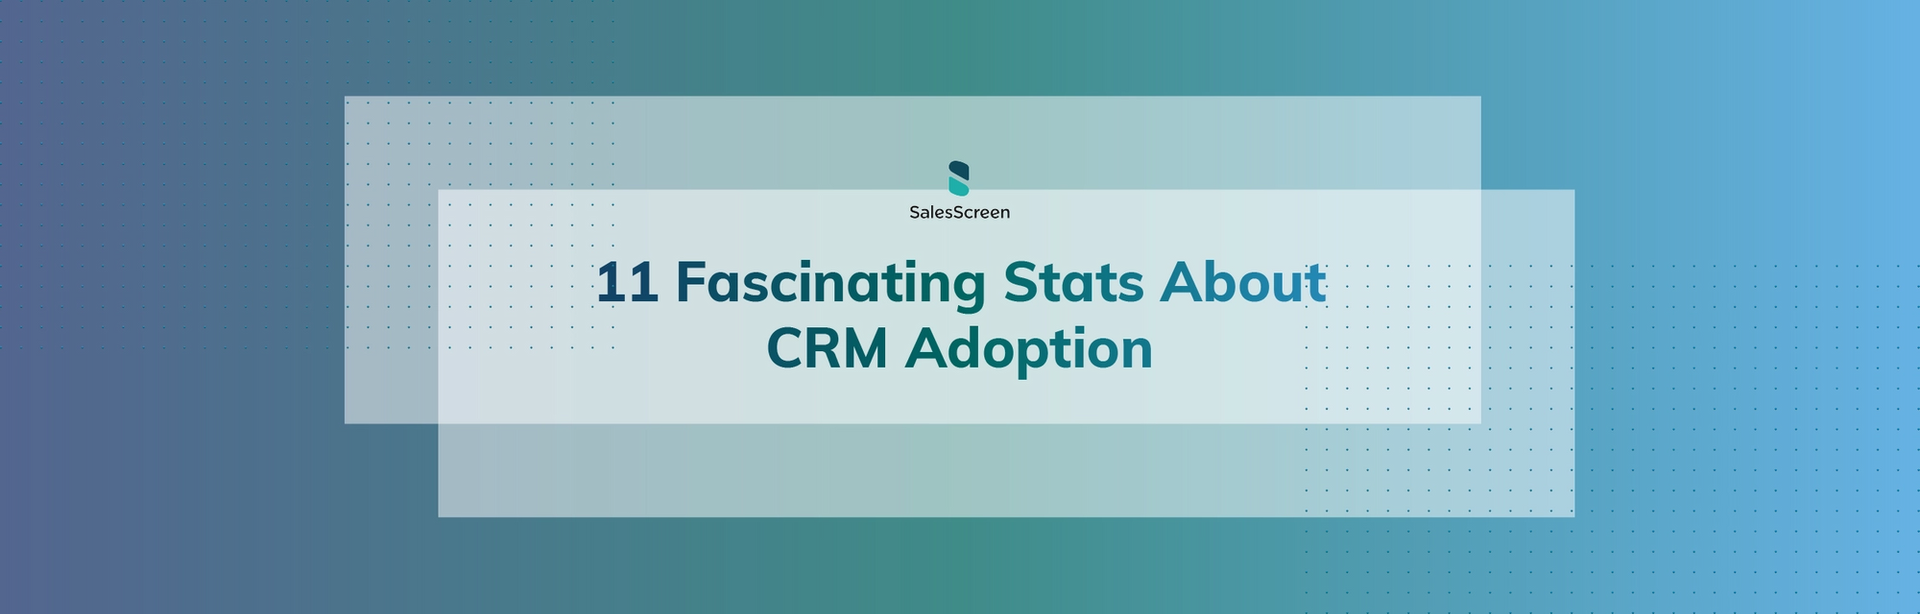 11 Fascinating Stats About CRM Adoption [Infographic]